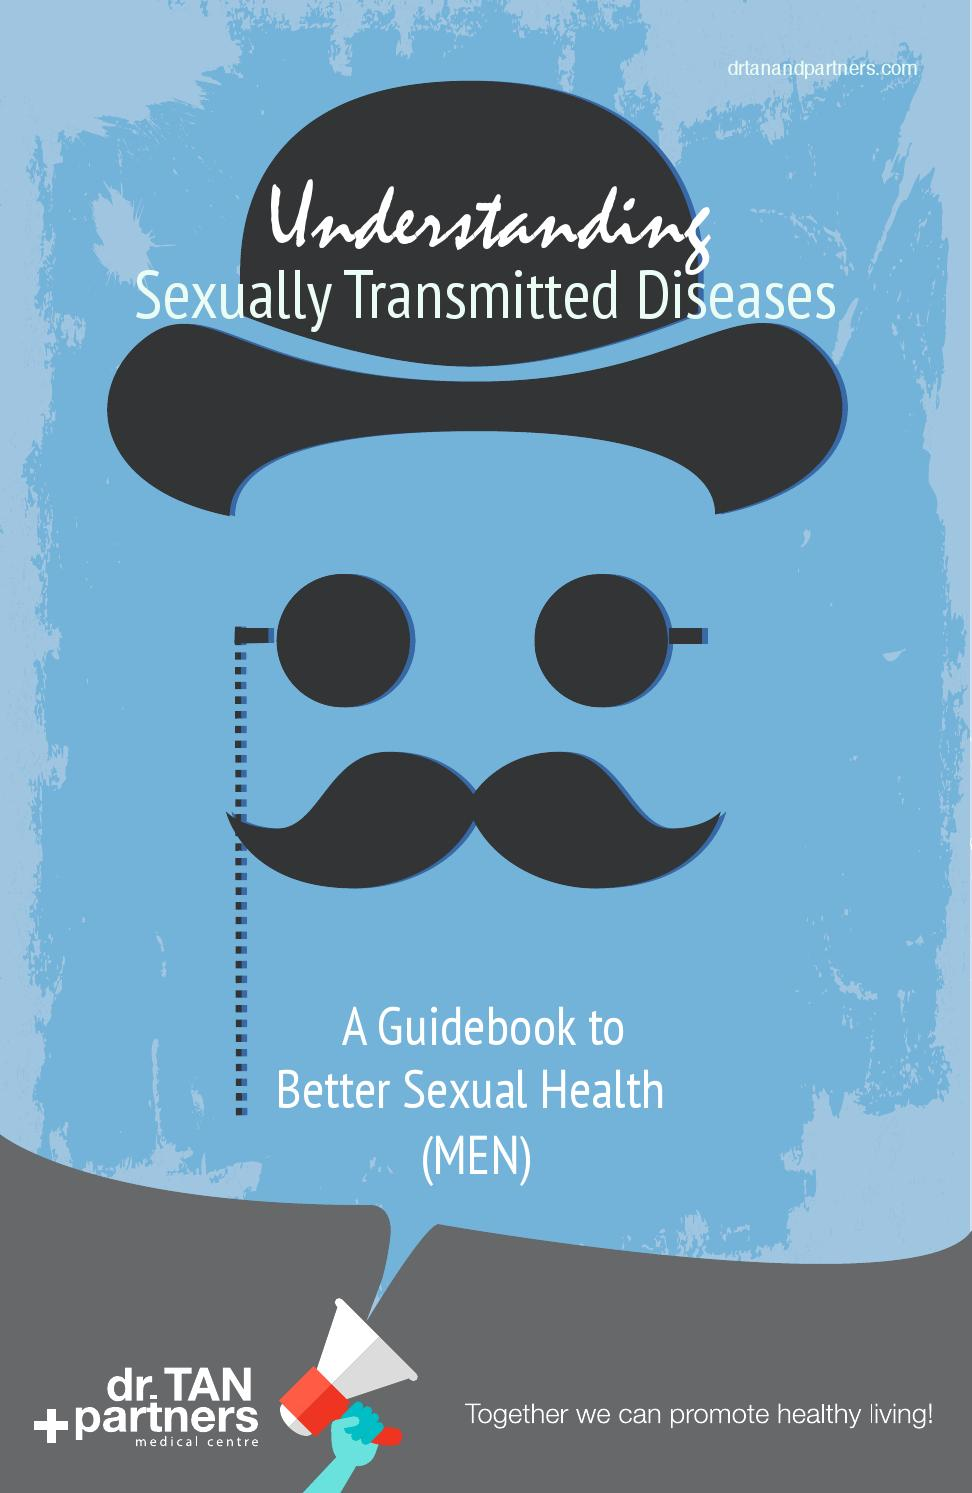 understanding sexuality and sexually transmitted diseases Why is sexually transmitted disease prevention important understanding sexually transmitted diseases sexuality and secrecy.